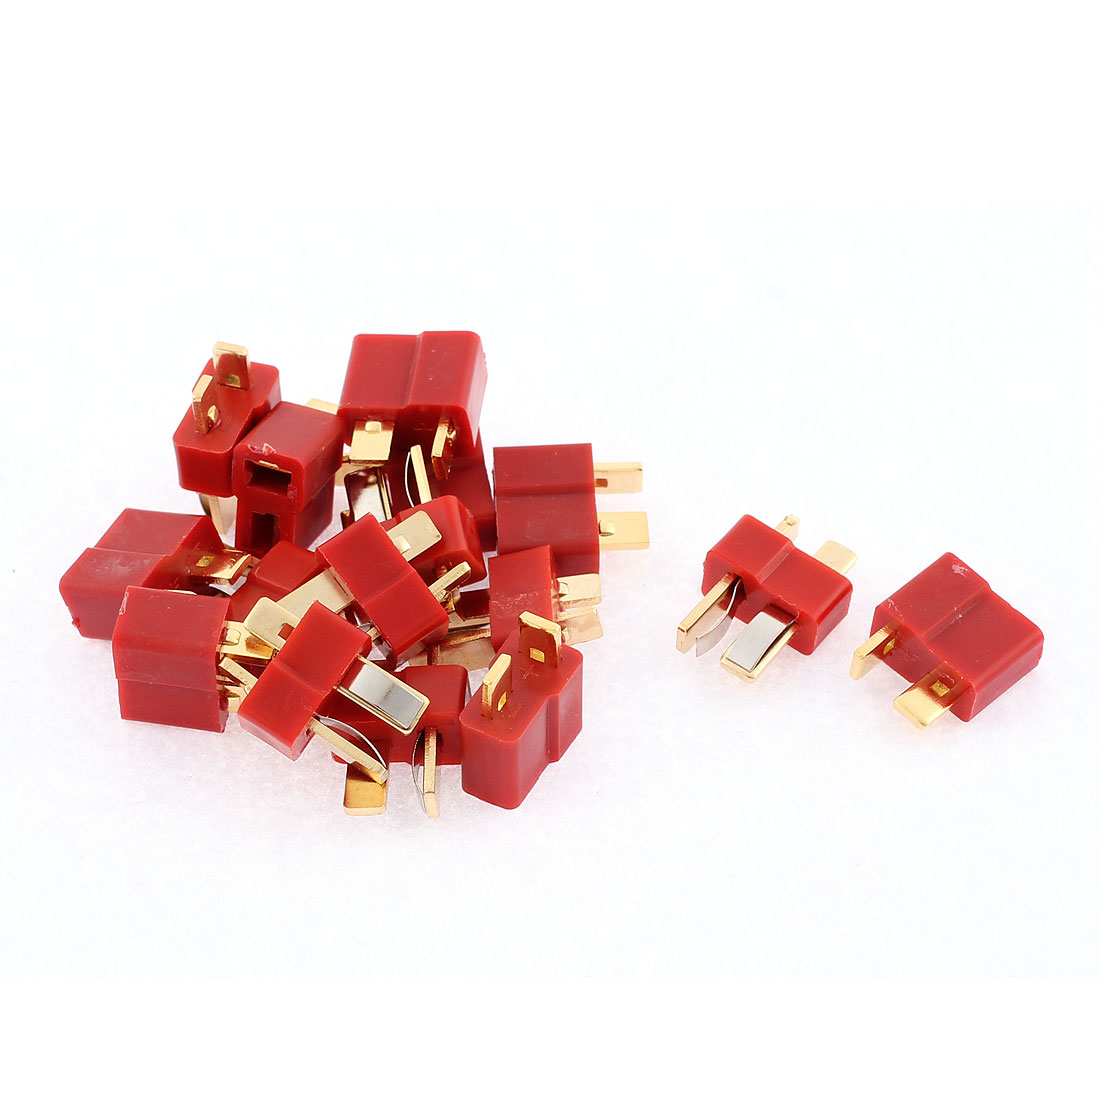 8 Sets T Male + Female Connectors for RC Airplane Aircraft LiPo Battery ESC